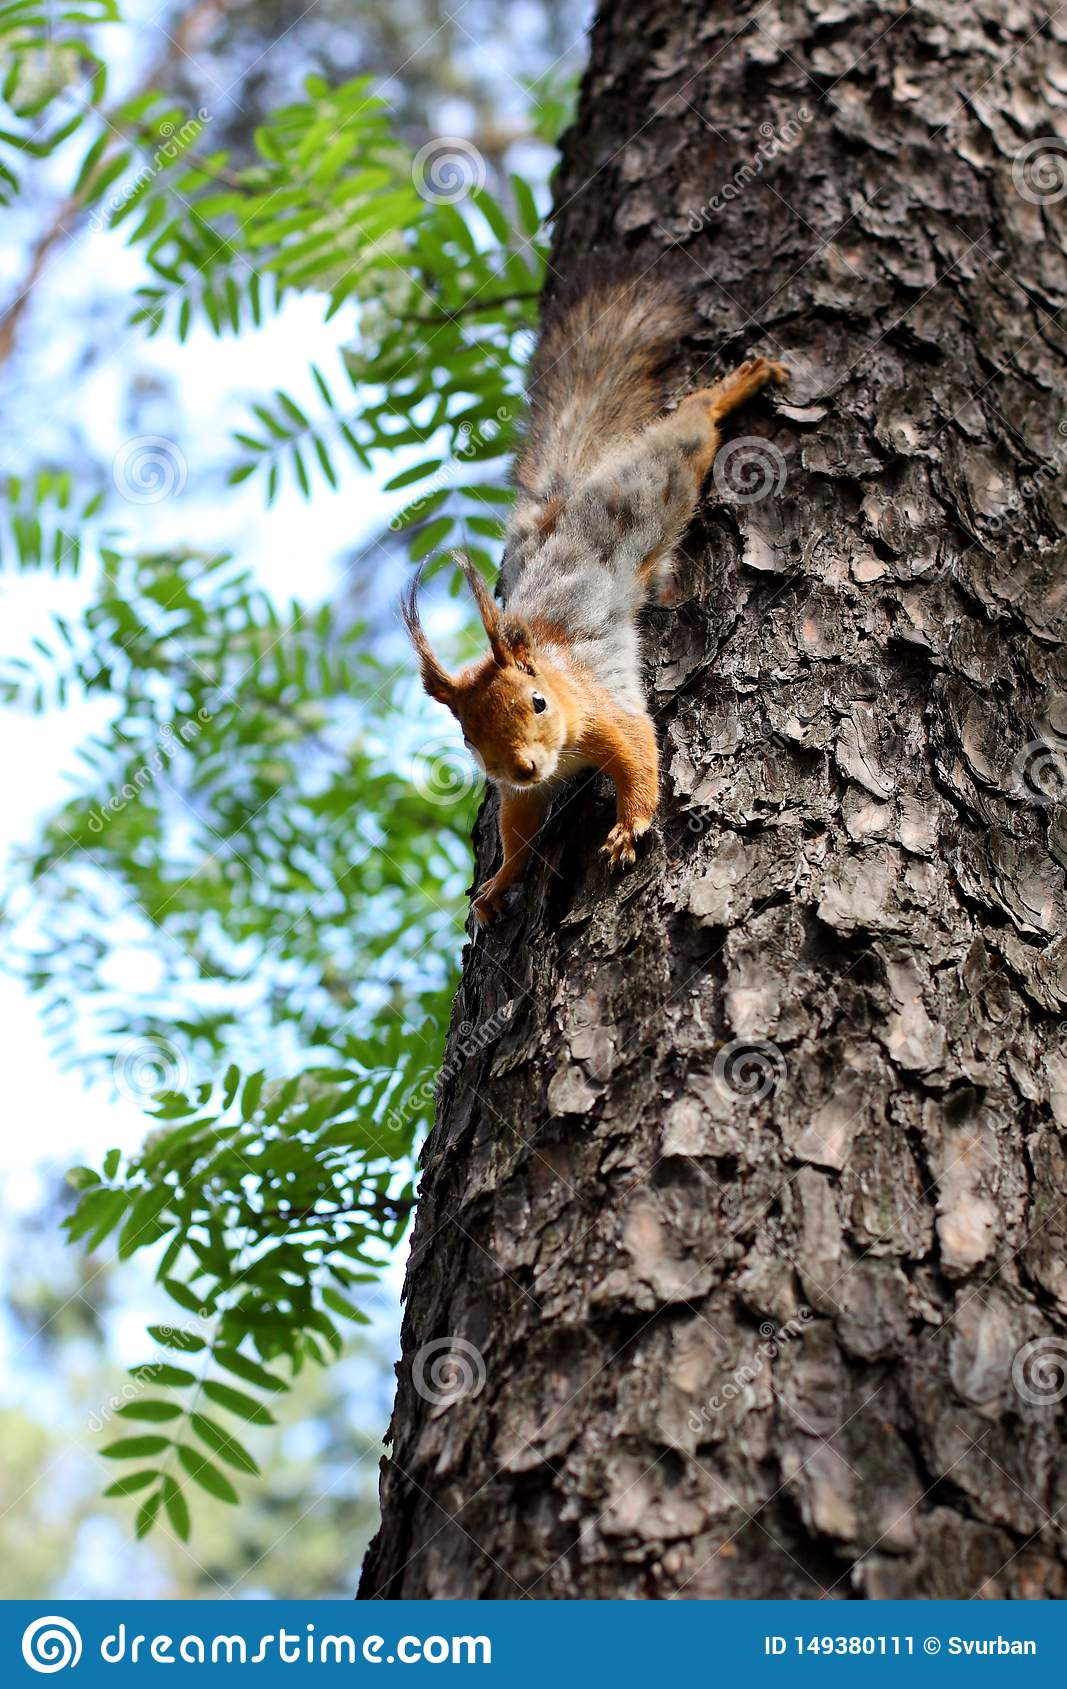 Squirrel jumping on a tree in the forest in summer